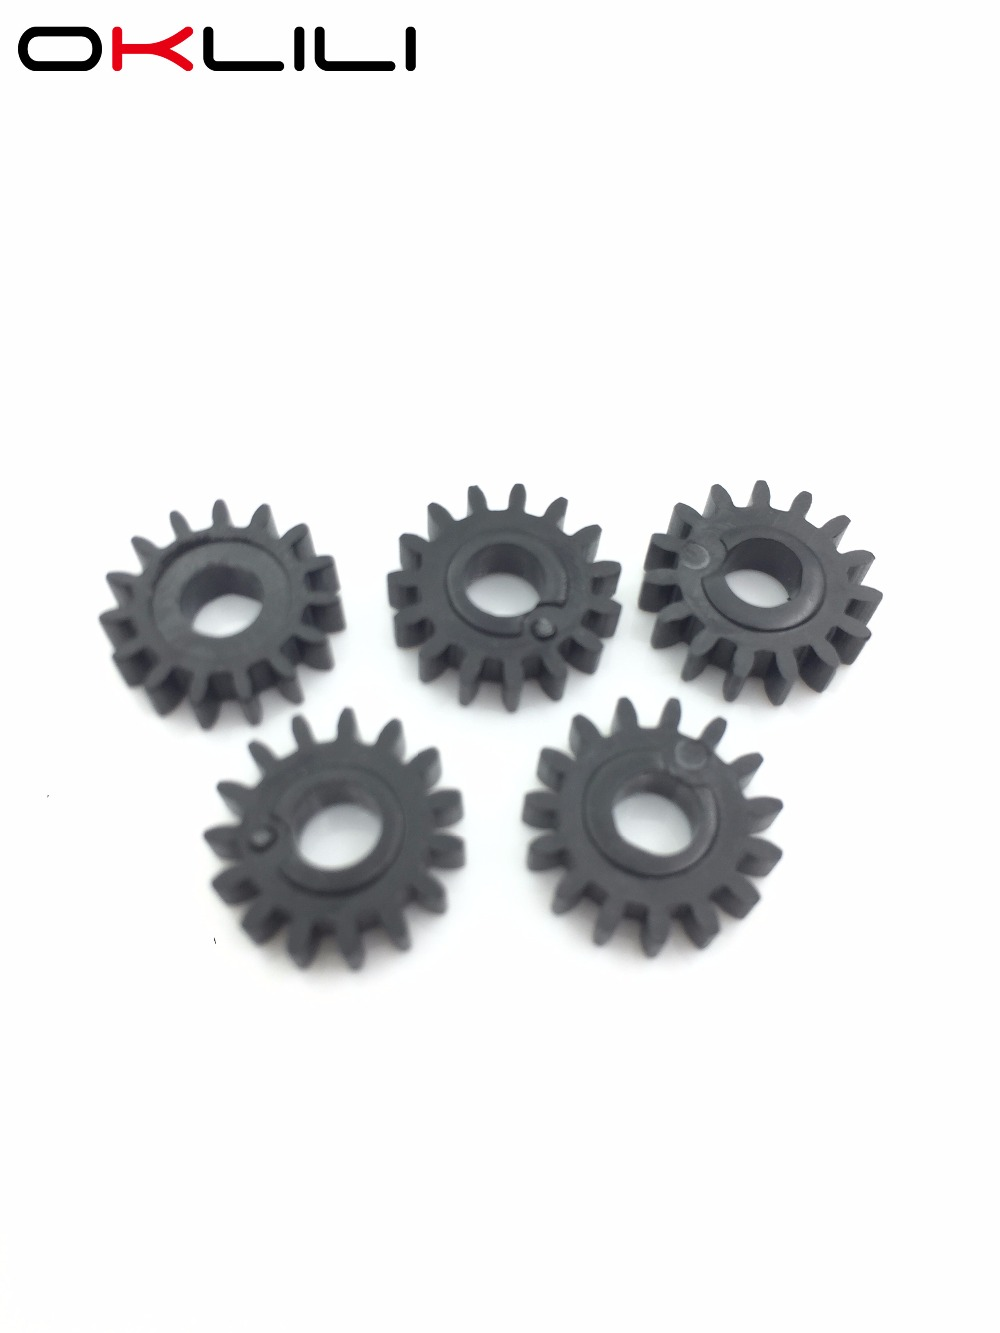 5PC Clutch Gear 15T Carriage Lock For HP C3150 C3180 C4140 C4150 C4280 D5060 D5065 D5069 J3680 6310 L7680 J4500 J4550 J4580 2355